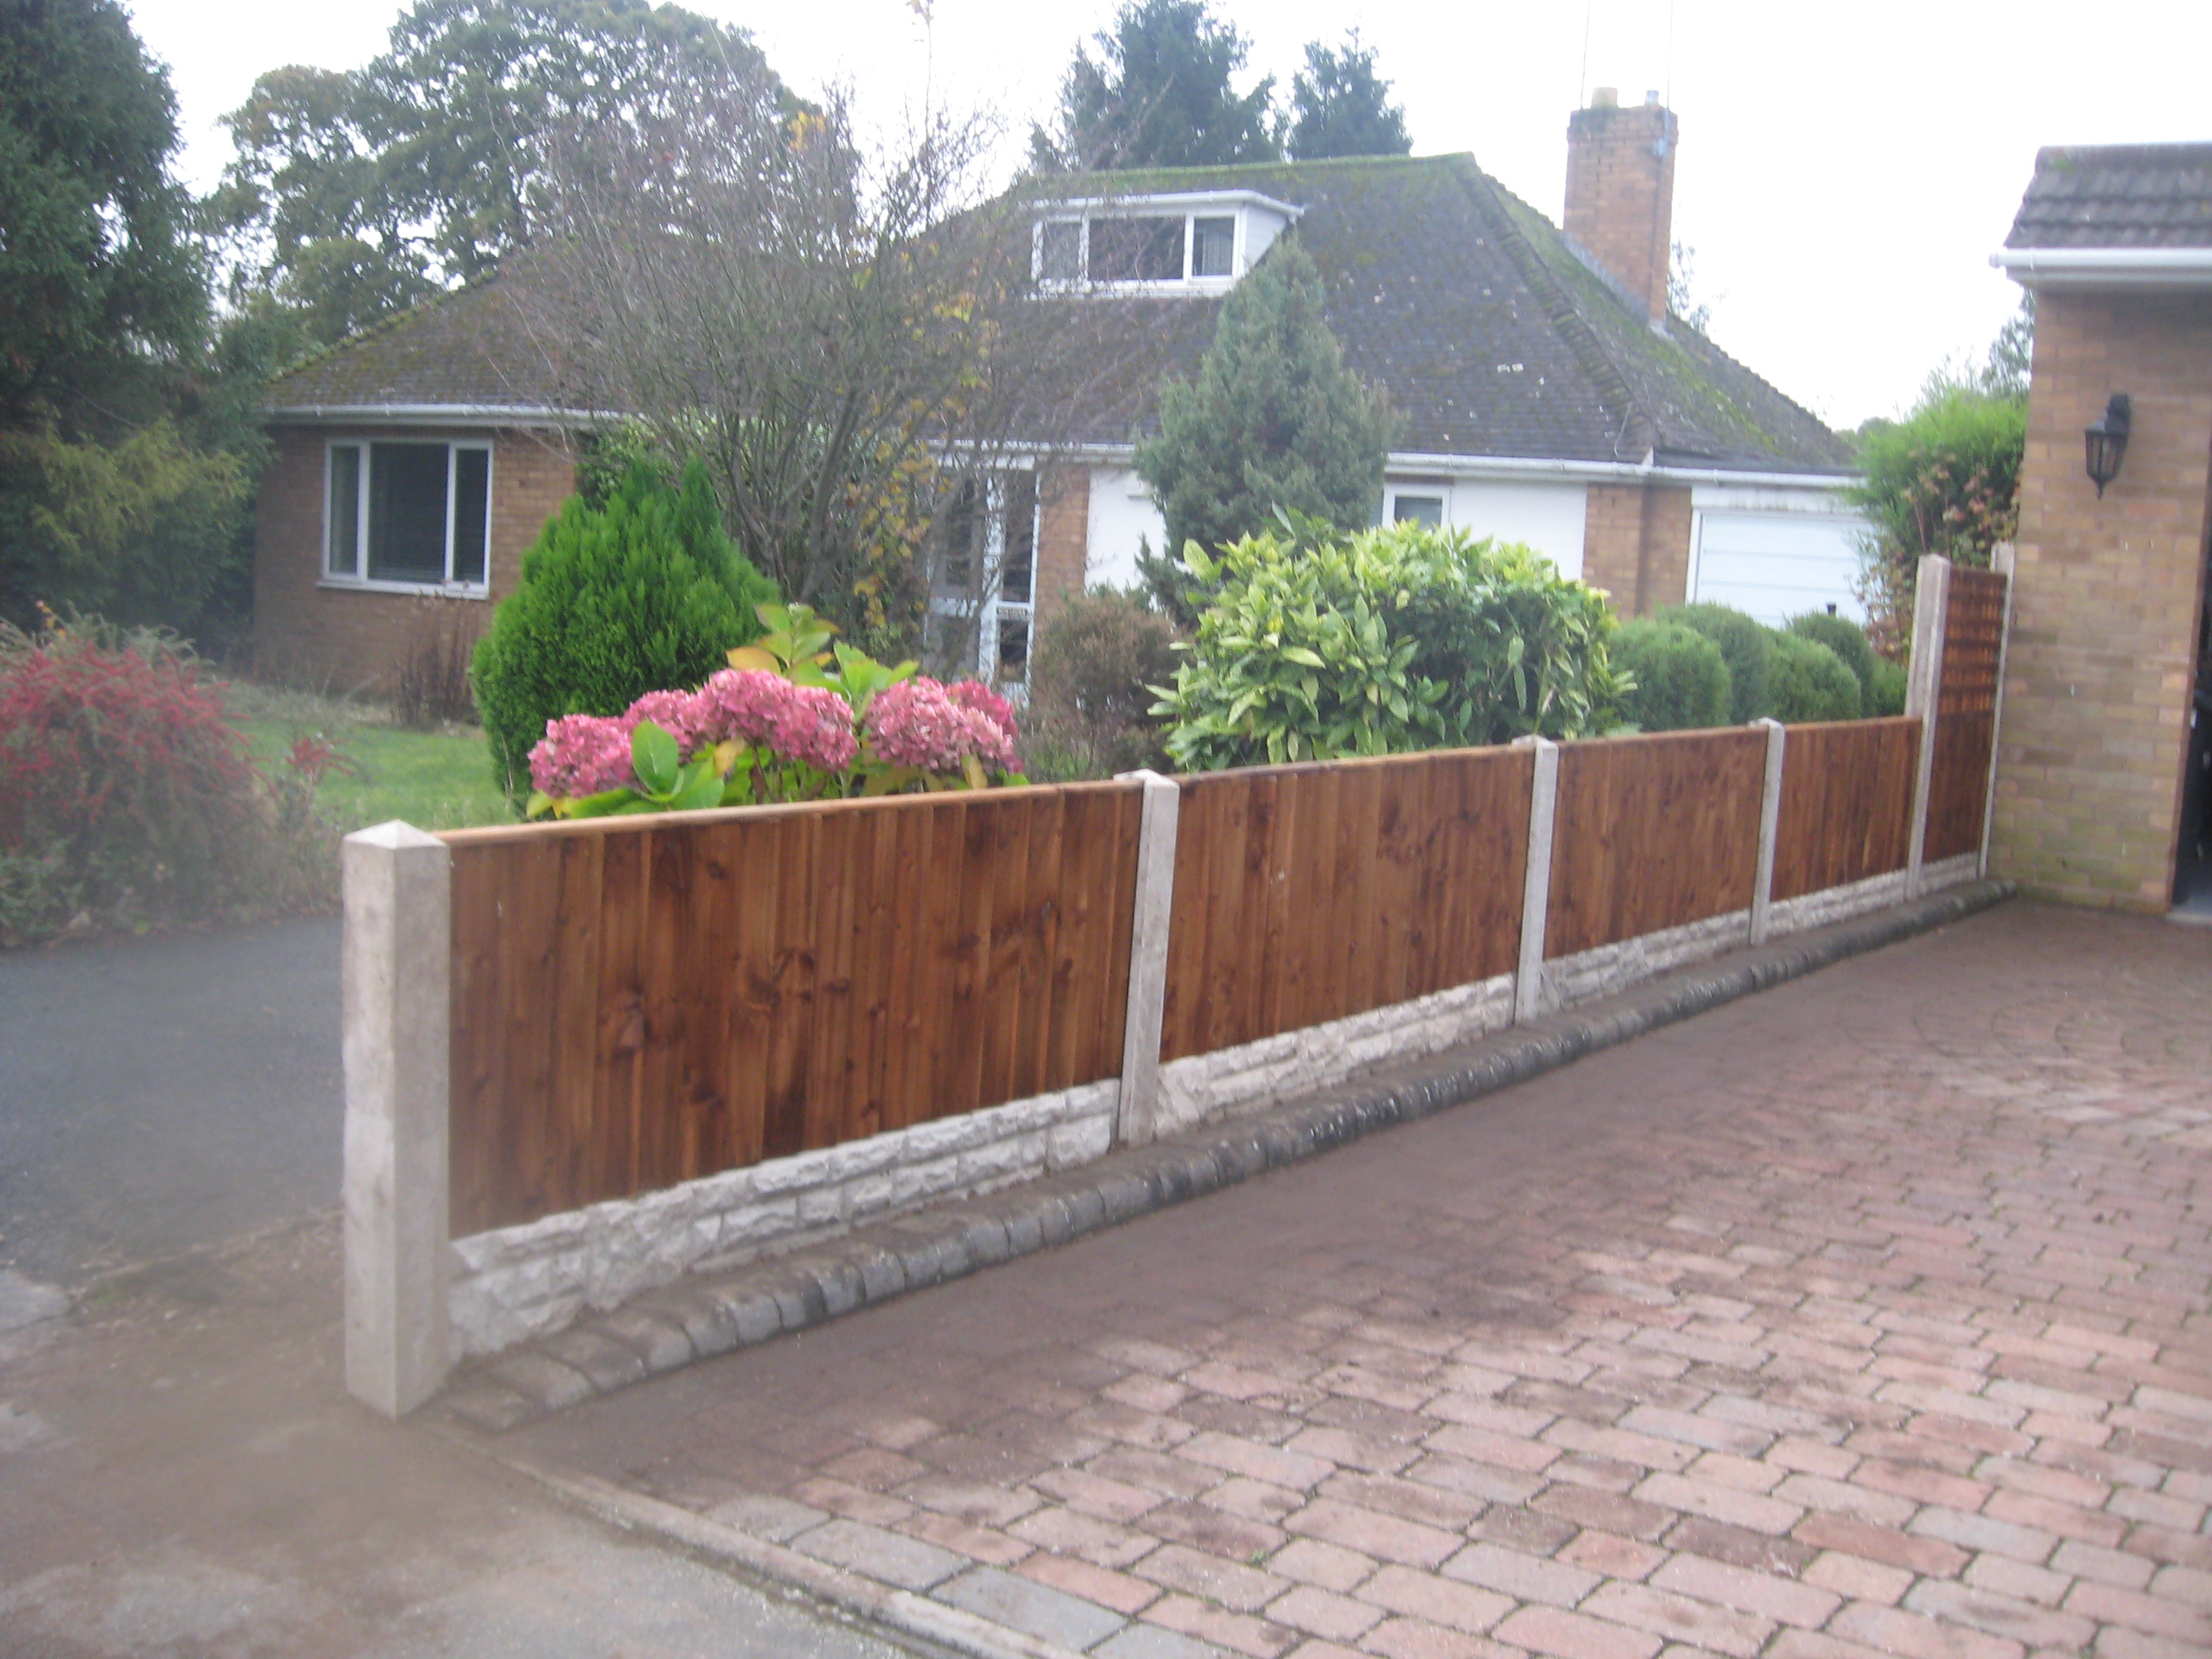 KM FENCING - Bewdley, Worcestershire DY12 2UT - 01562 636546 | ShowMeLocal.com